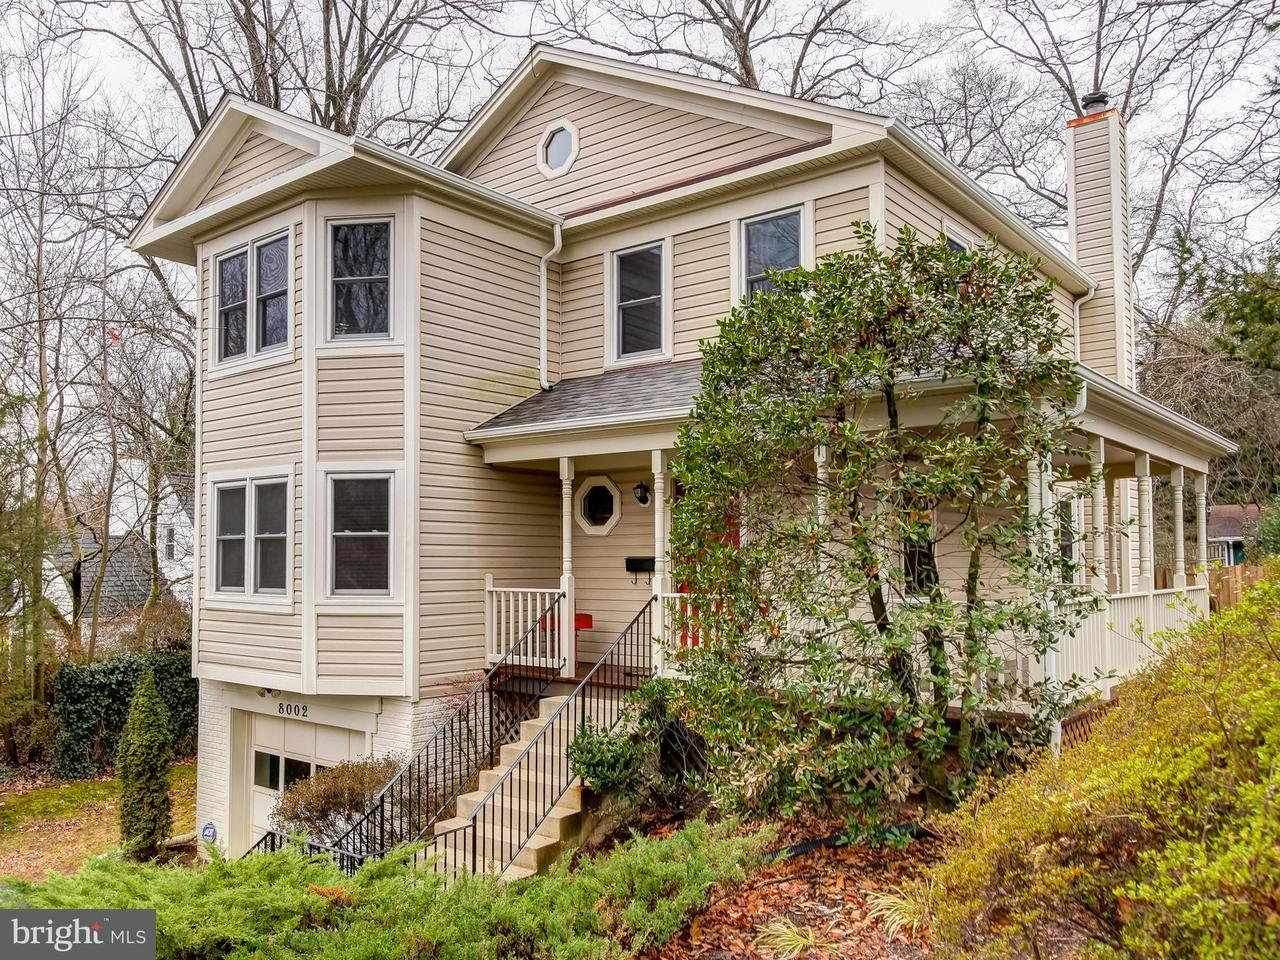 Single Family Home for Sale at 8002 Carroll Avenue 8002 Carroll Avenue Takoma Park, Maryland 20912 United States